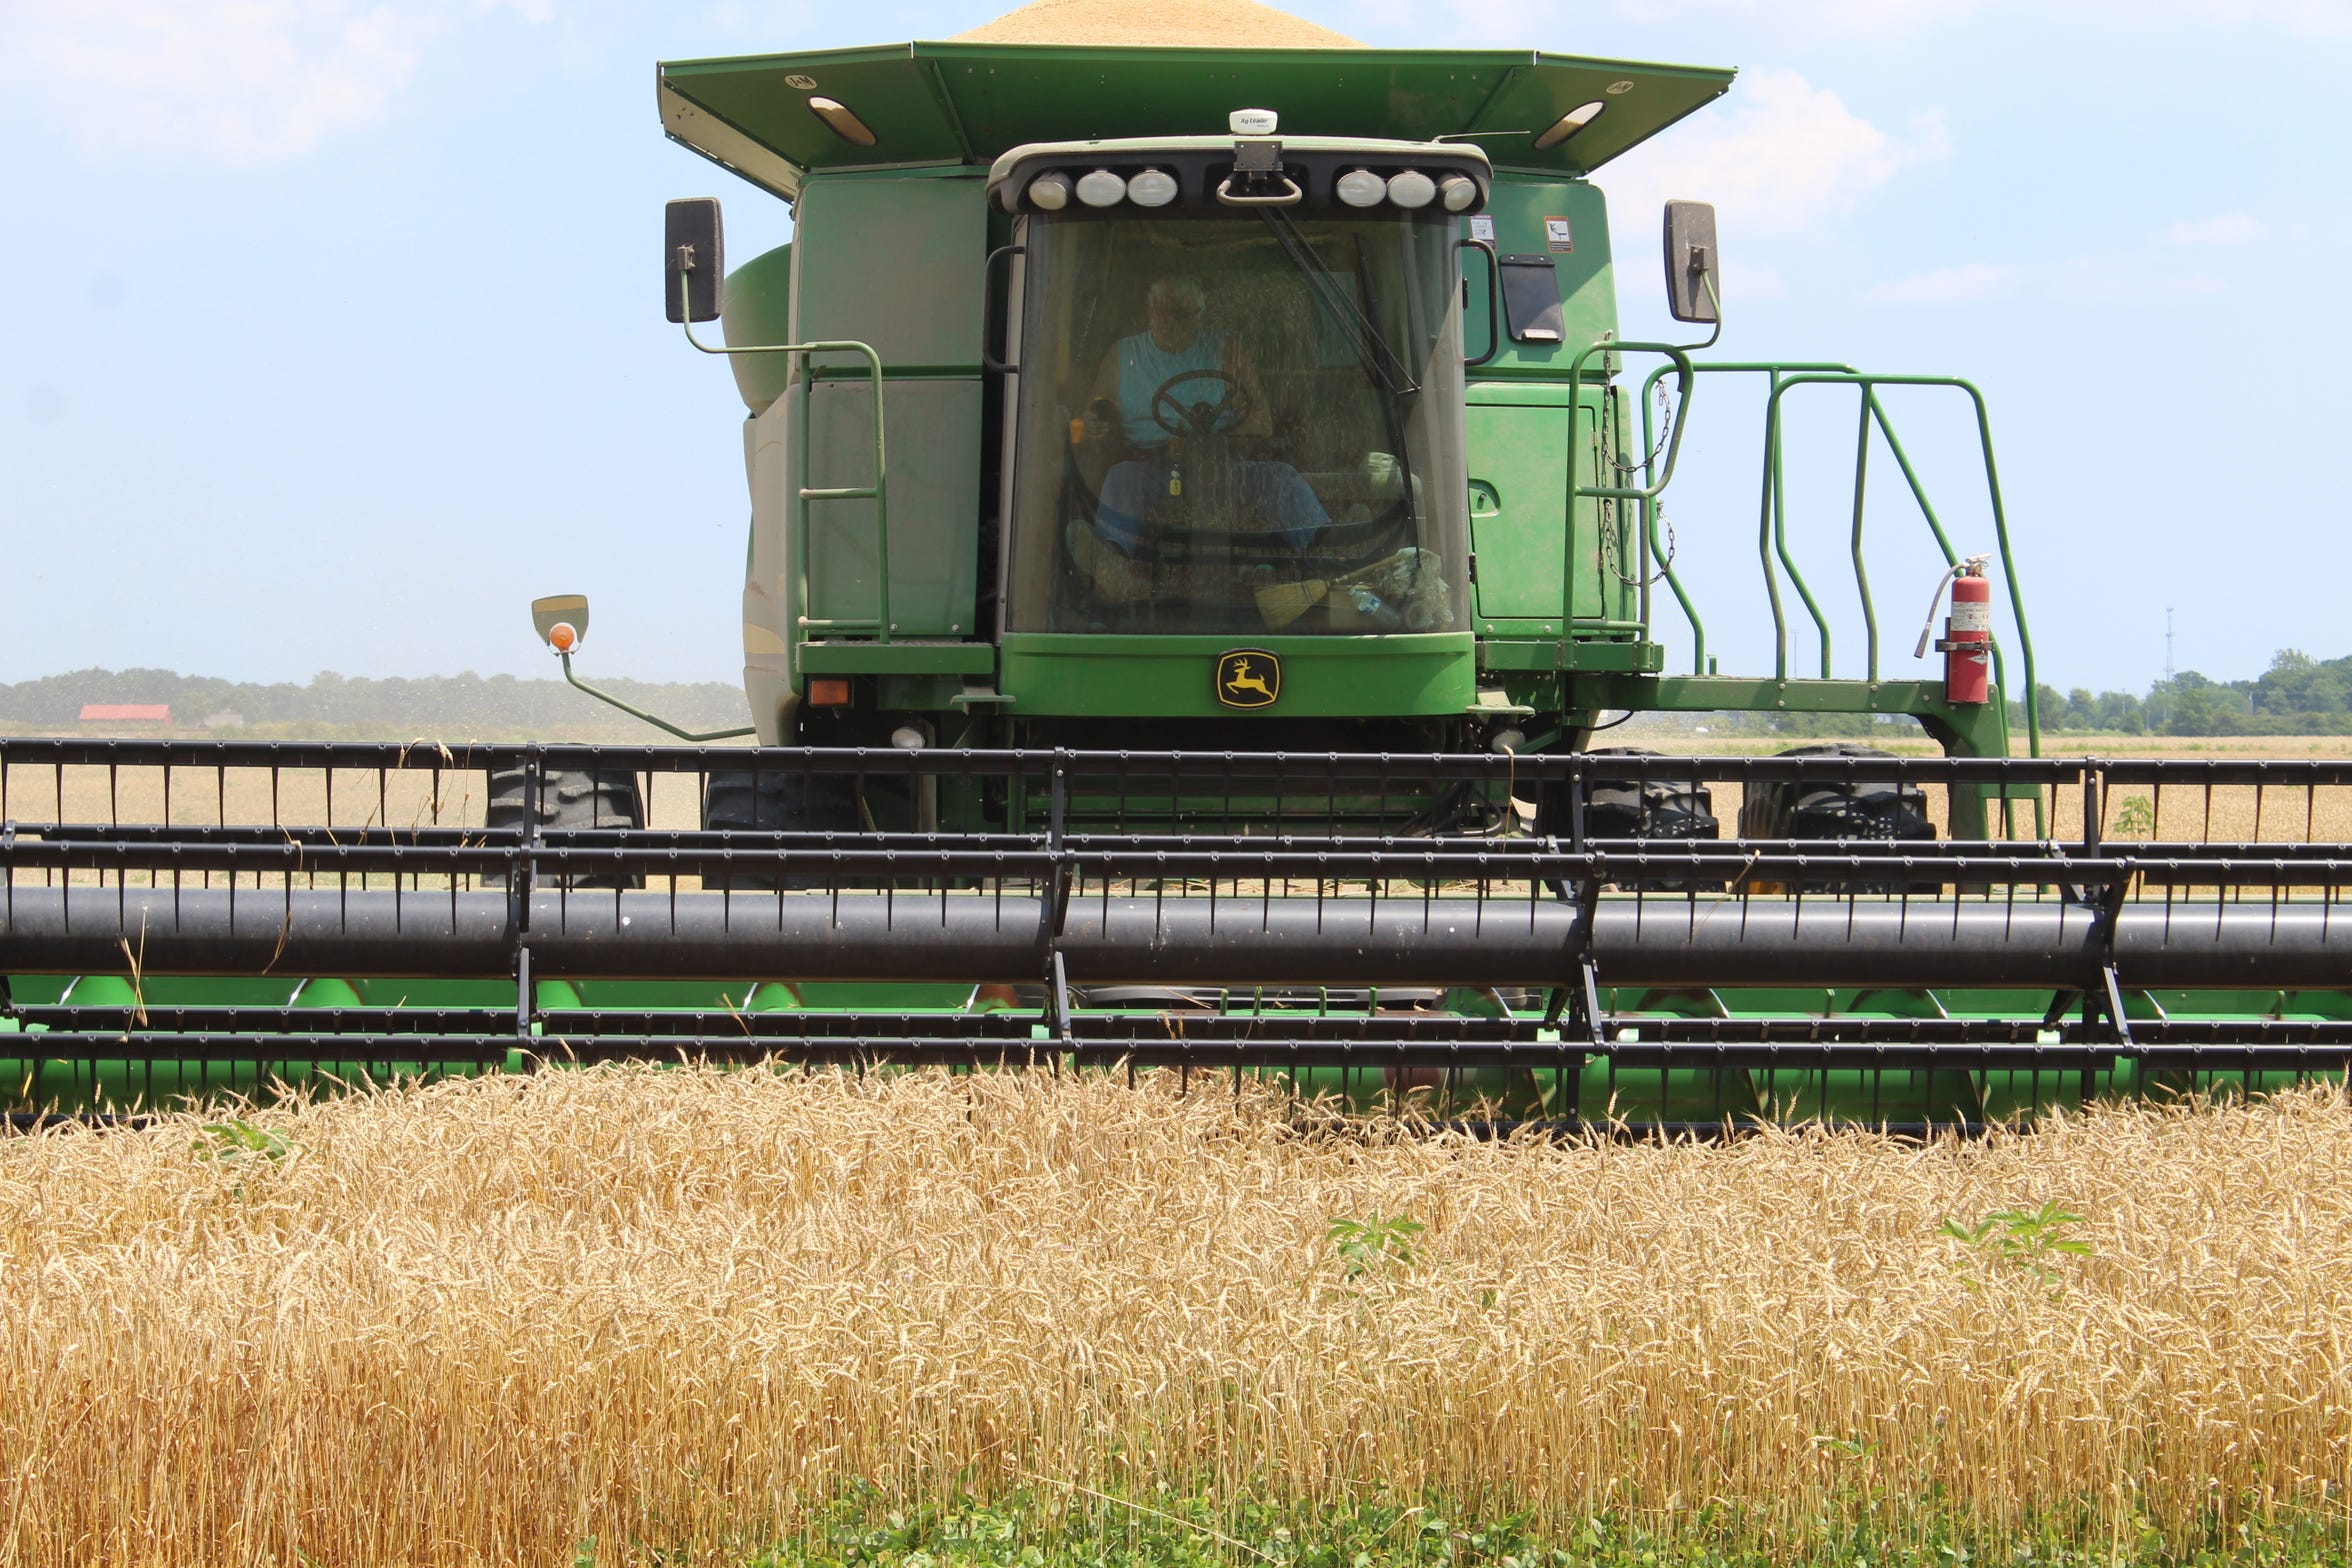 Ottawa County farmer Ron Laubacher harvests wheat on his John Deere combine. Laubacher had planned on growing and harvesting 120 acres of wheat, but wet weather killed 40 acres